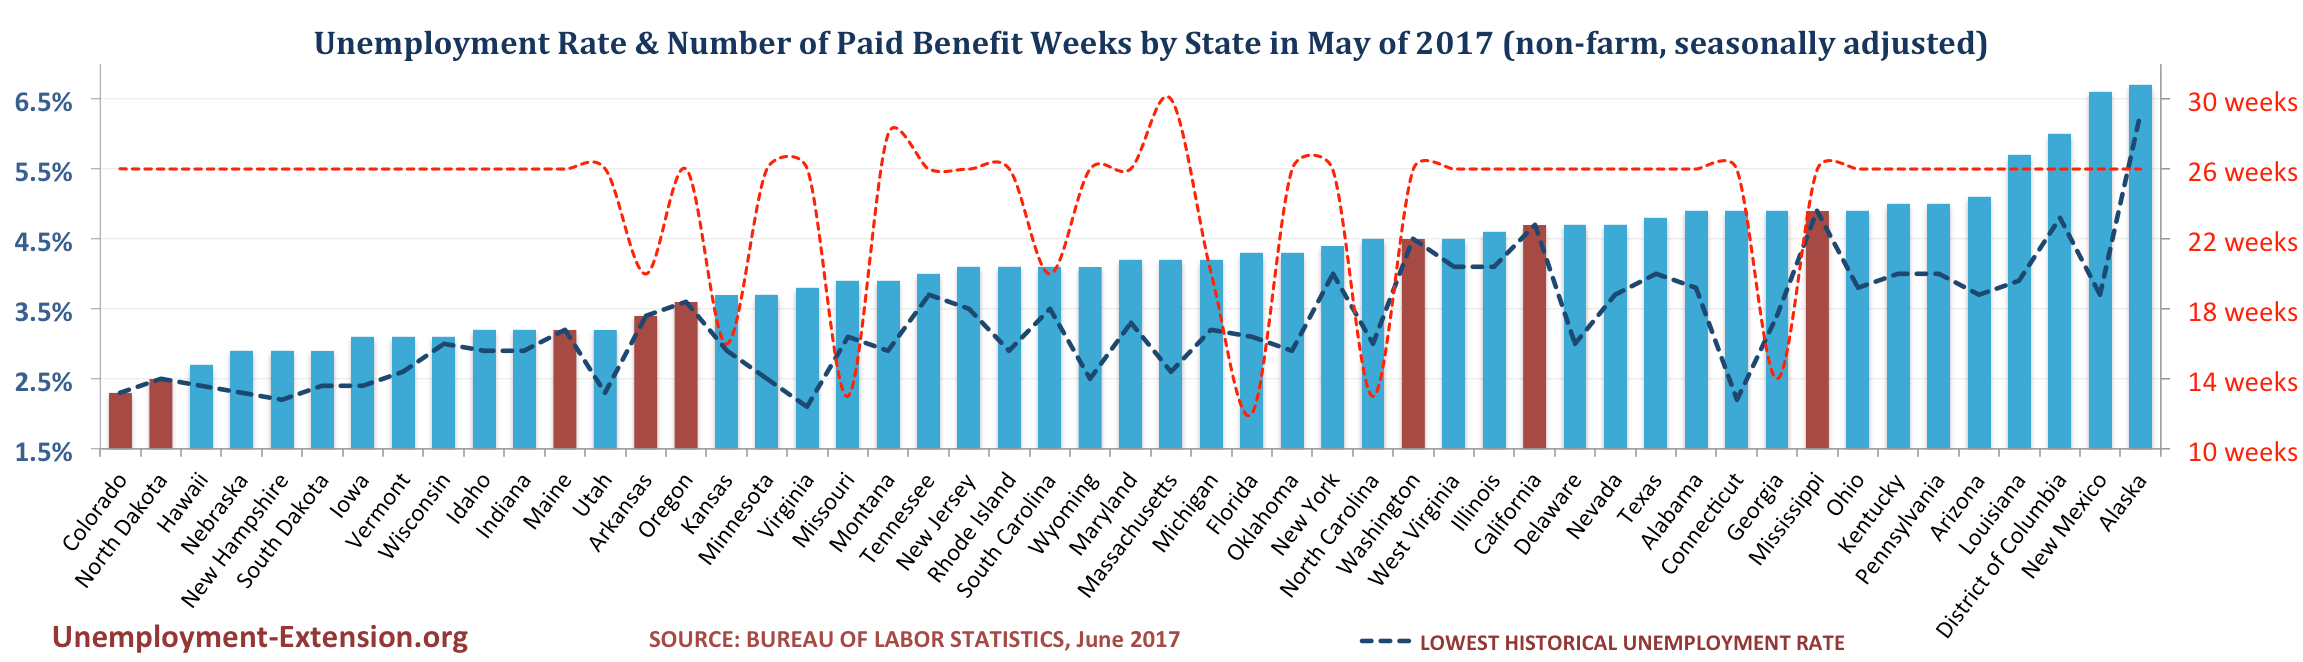 Unemployment Rate and Number of Paid Unemployment Benefit weeks by State (non-farm, seasonally adjusted) in June of 2017